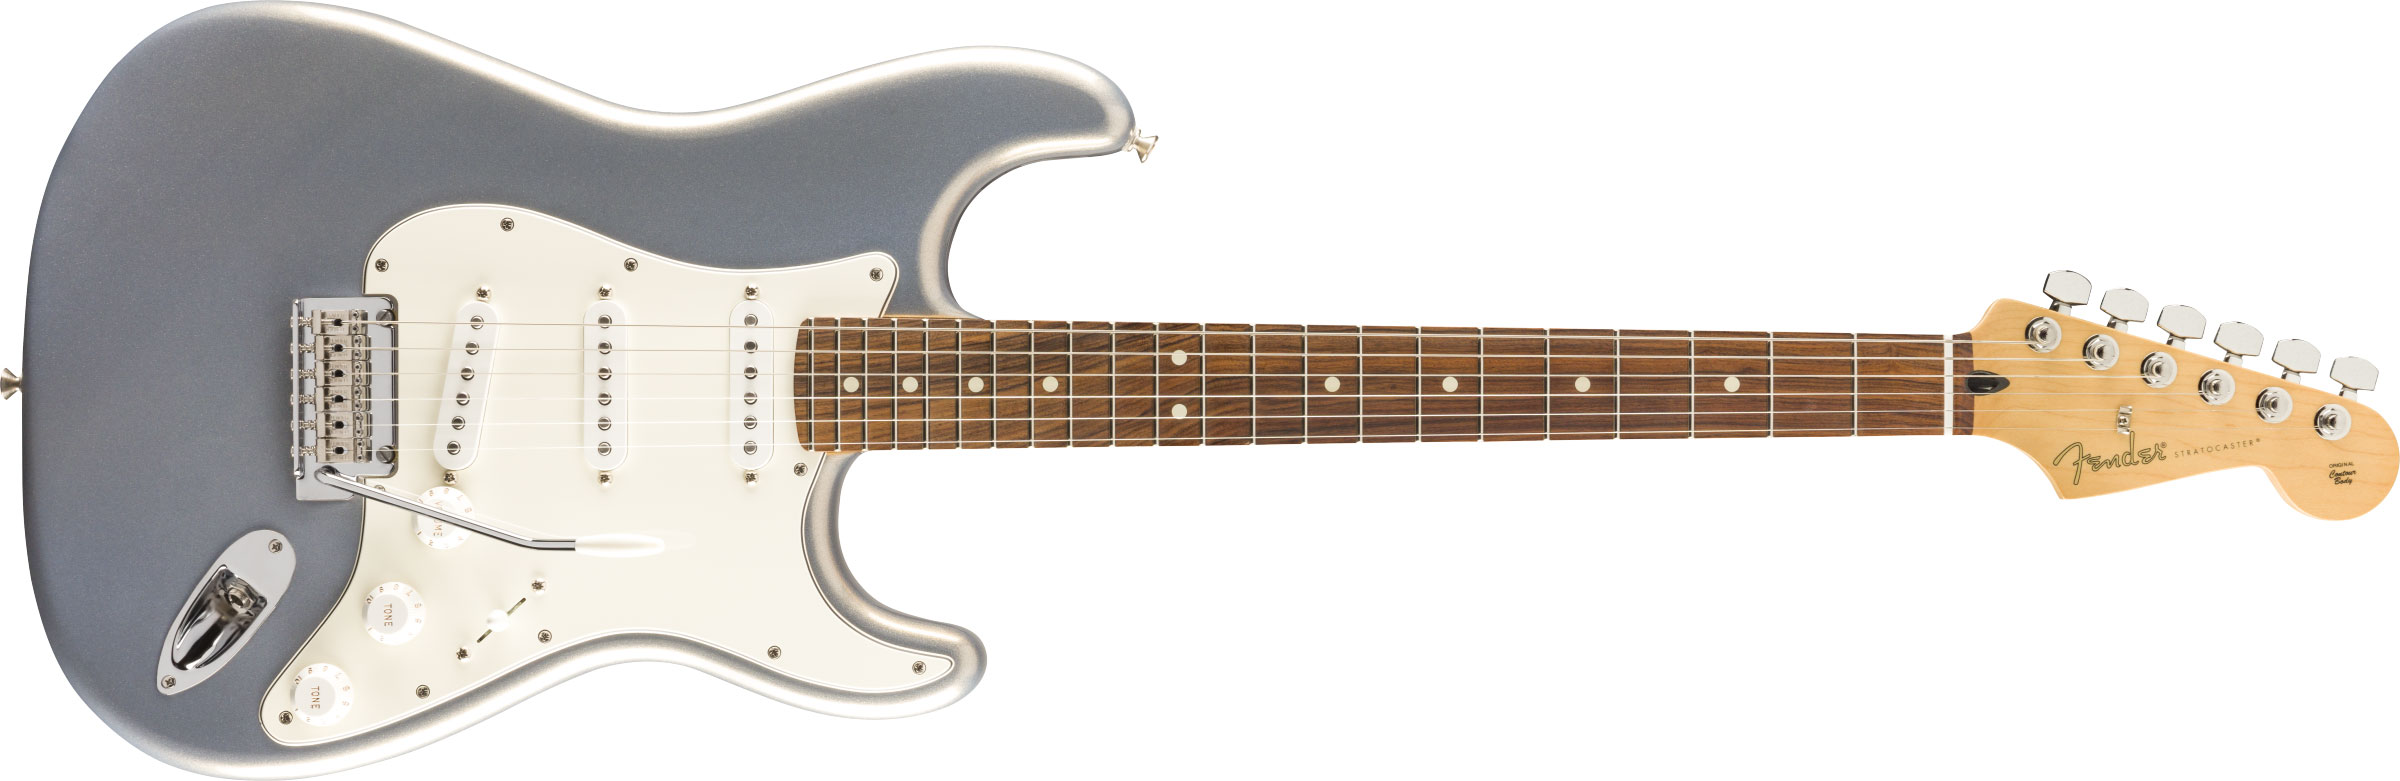 GUITARRA FENDER PLAYER STRATOCASTER PF 014-4503-581 SILVER